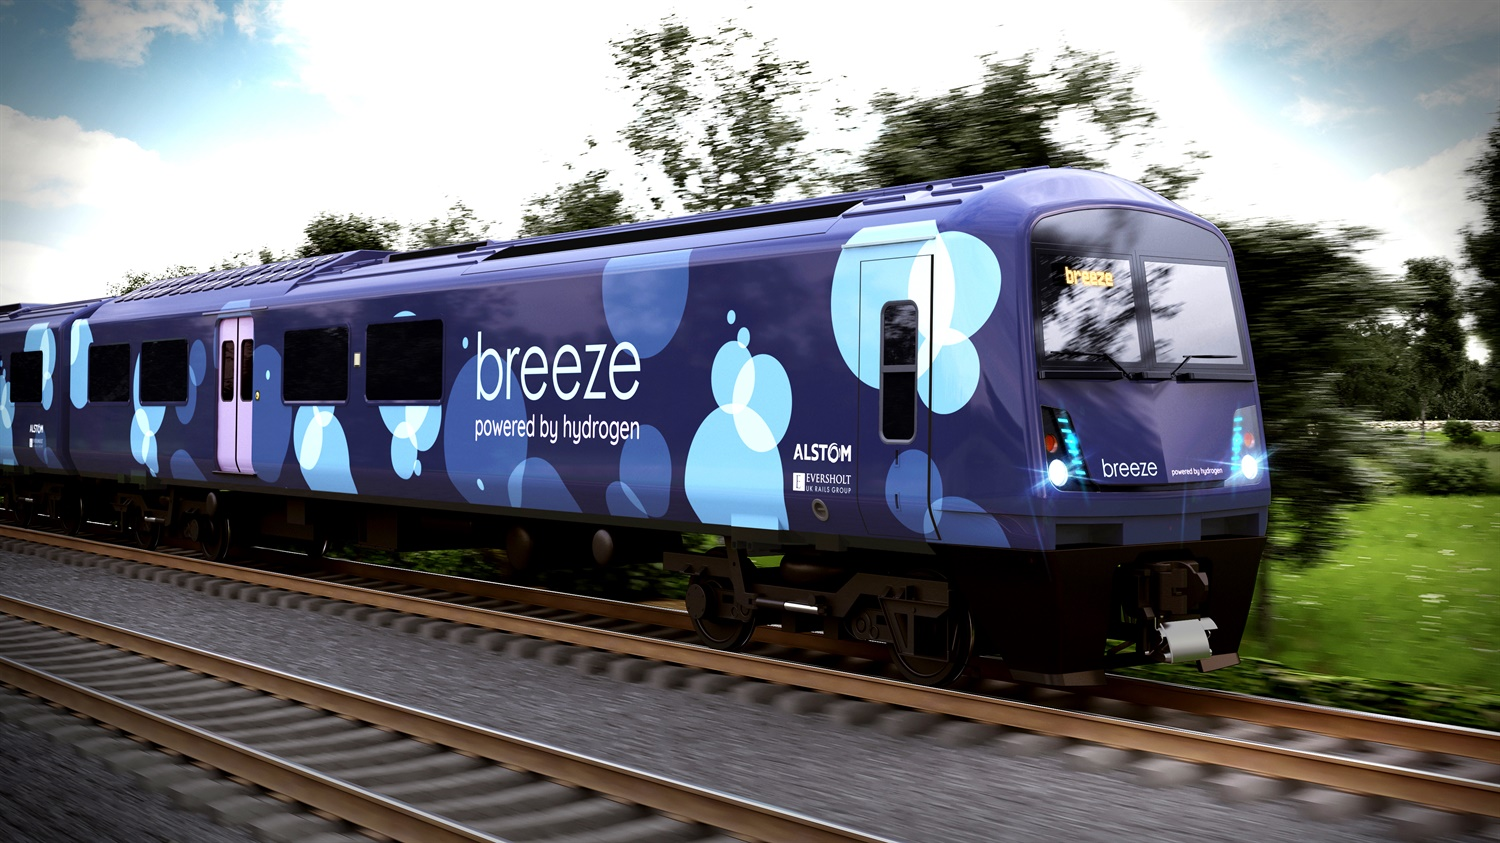 Introducing Alstom's Breeze trains